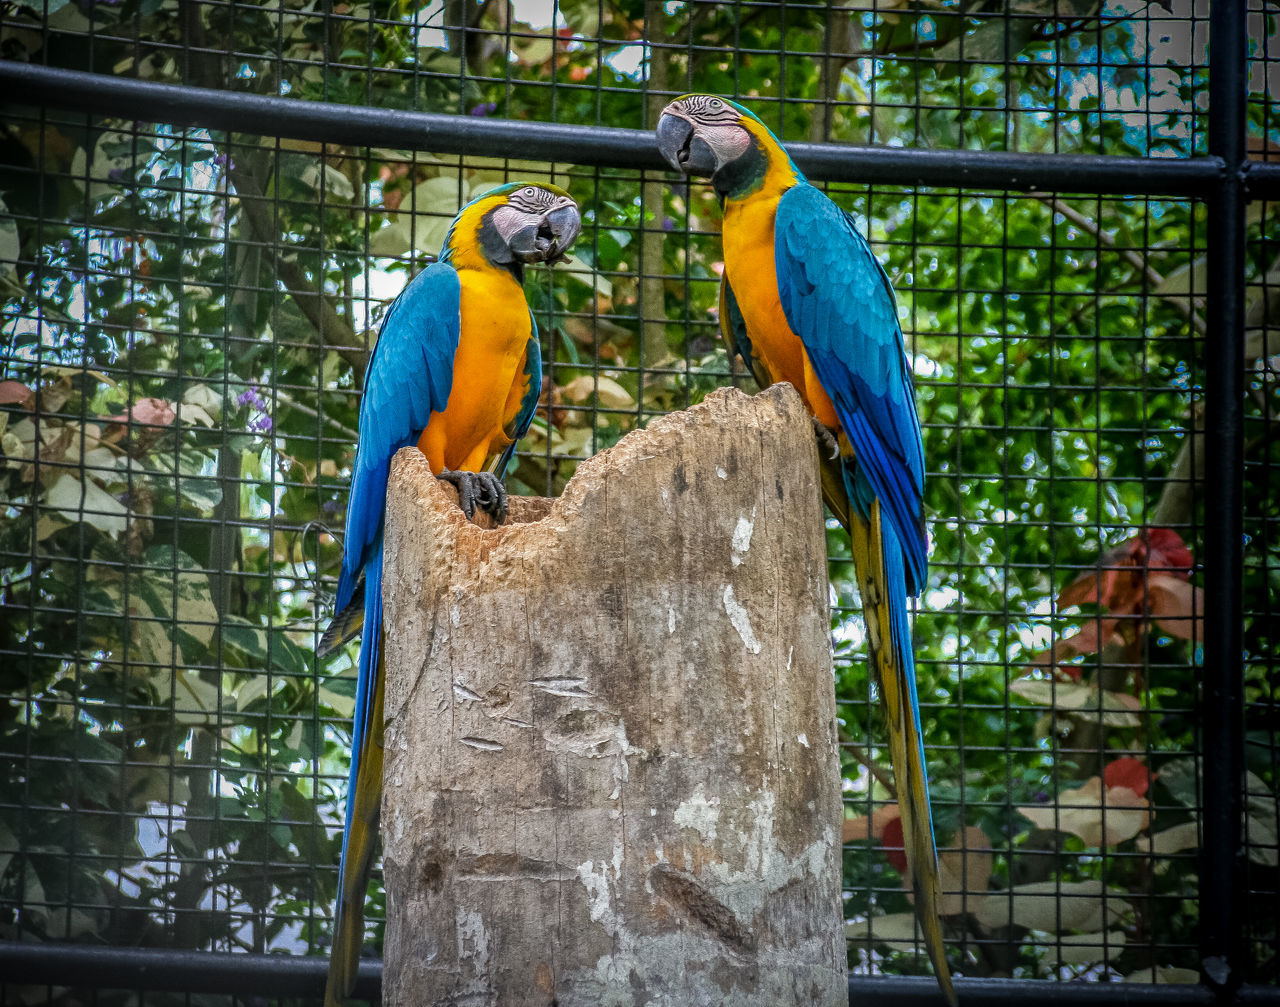 Macaw Macaw Parrot Nature Animals In Captivity Animals In The Wild Trinidad And Tobago Animal Wildlife Outdoors Zoo Zoo Animals  Zoology Cage Trinidad Domestic Animals Zoo Animals  Animal Themes Close-up